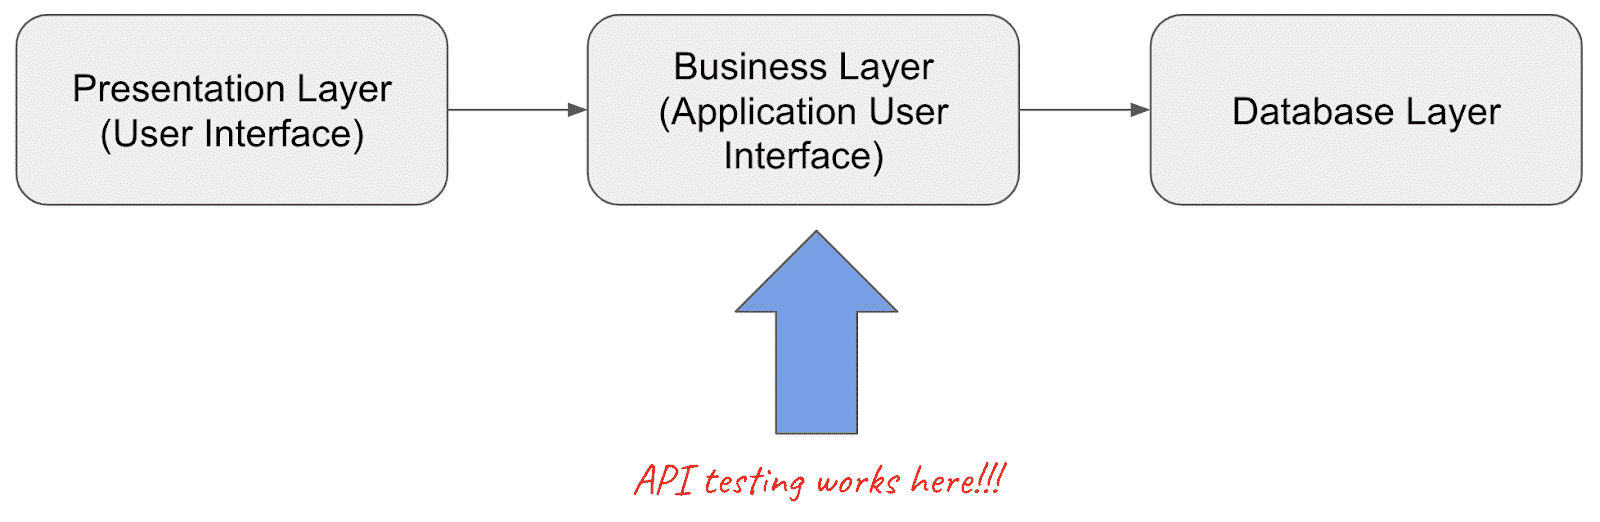 How API Testing Works Diagram by Modus Create